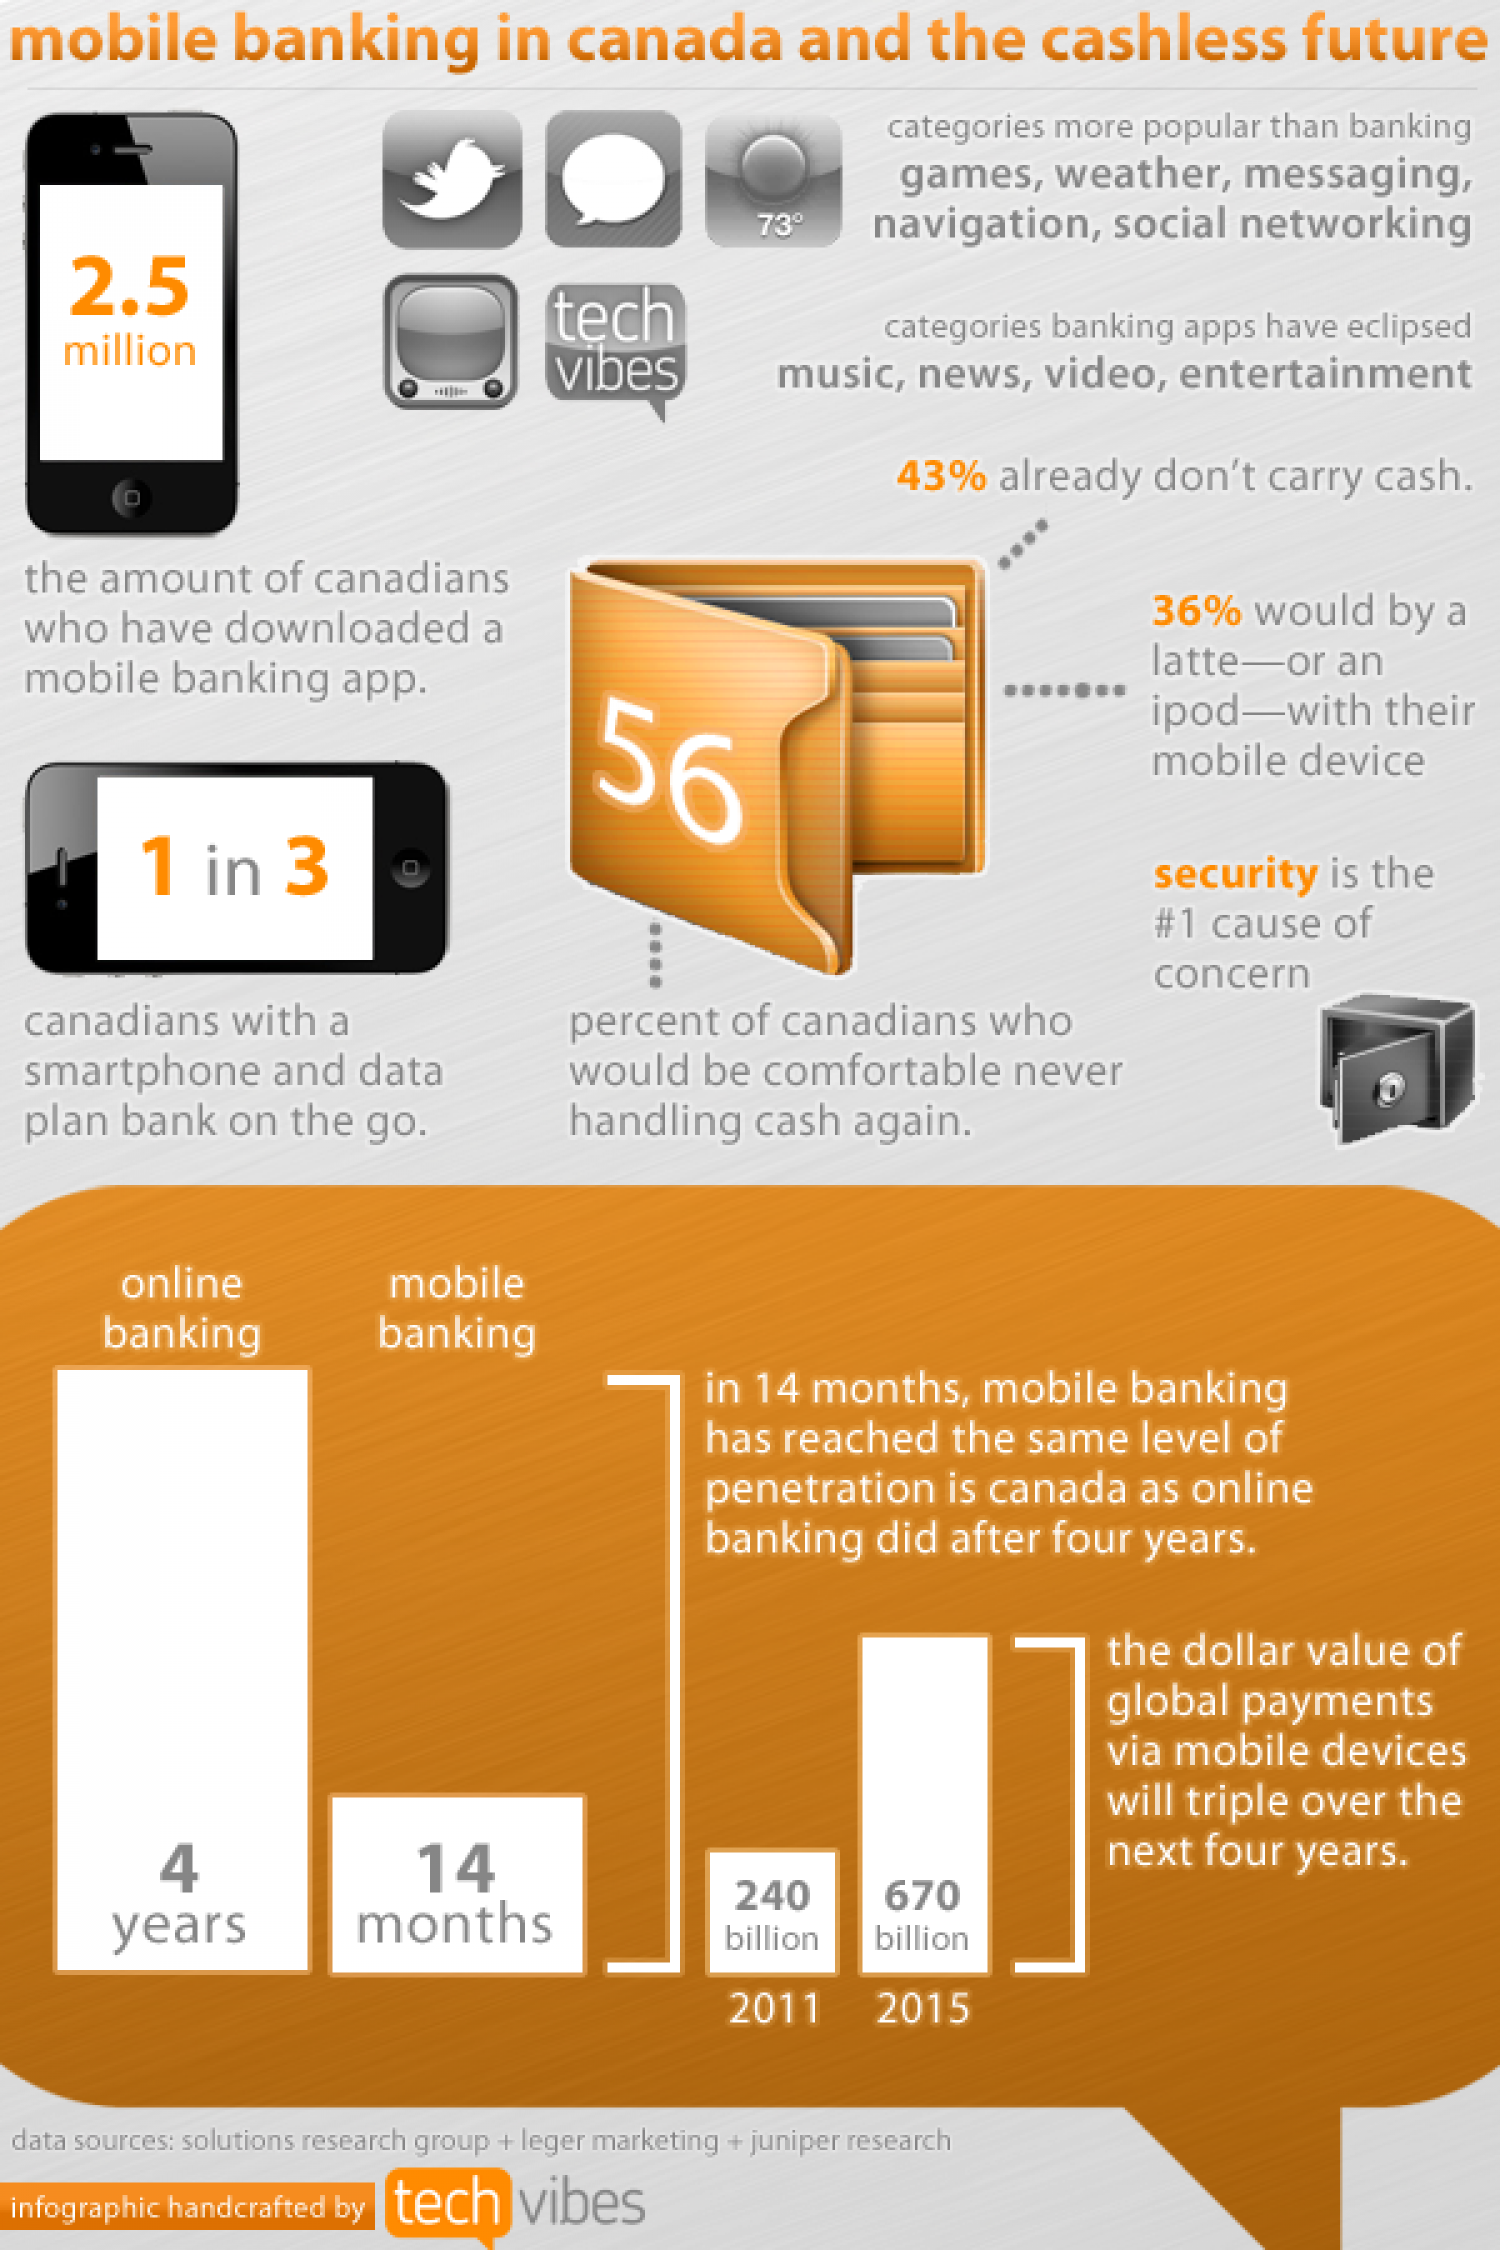 Mobile Banking in Canada and the Cashless Future Infographic